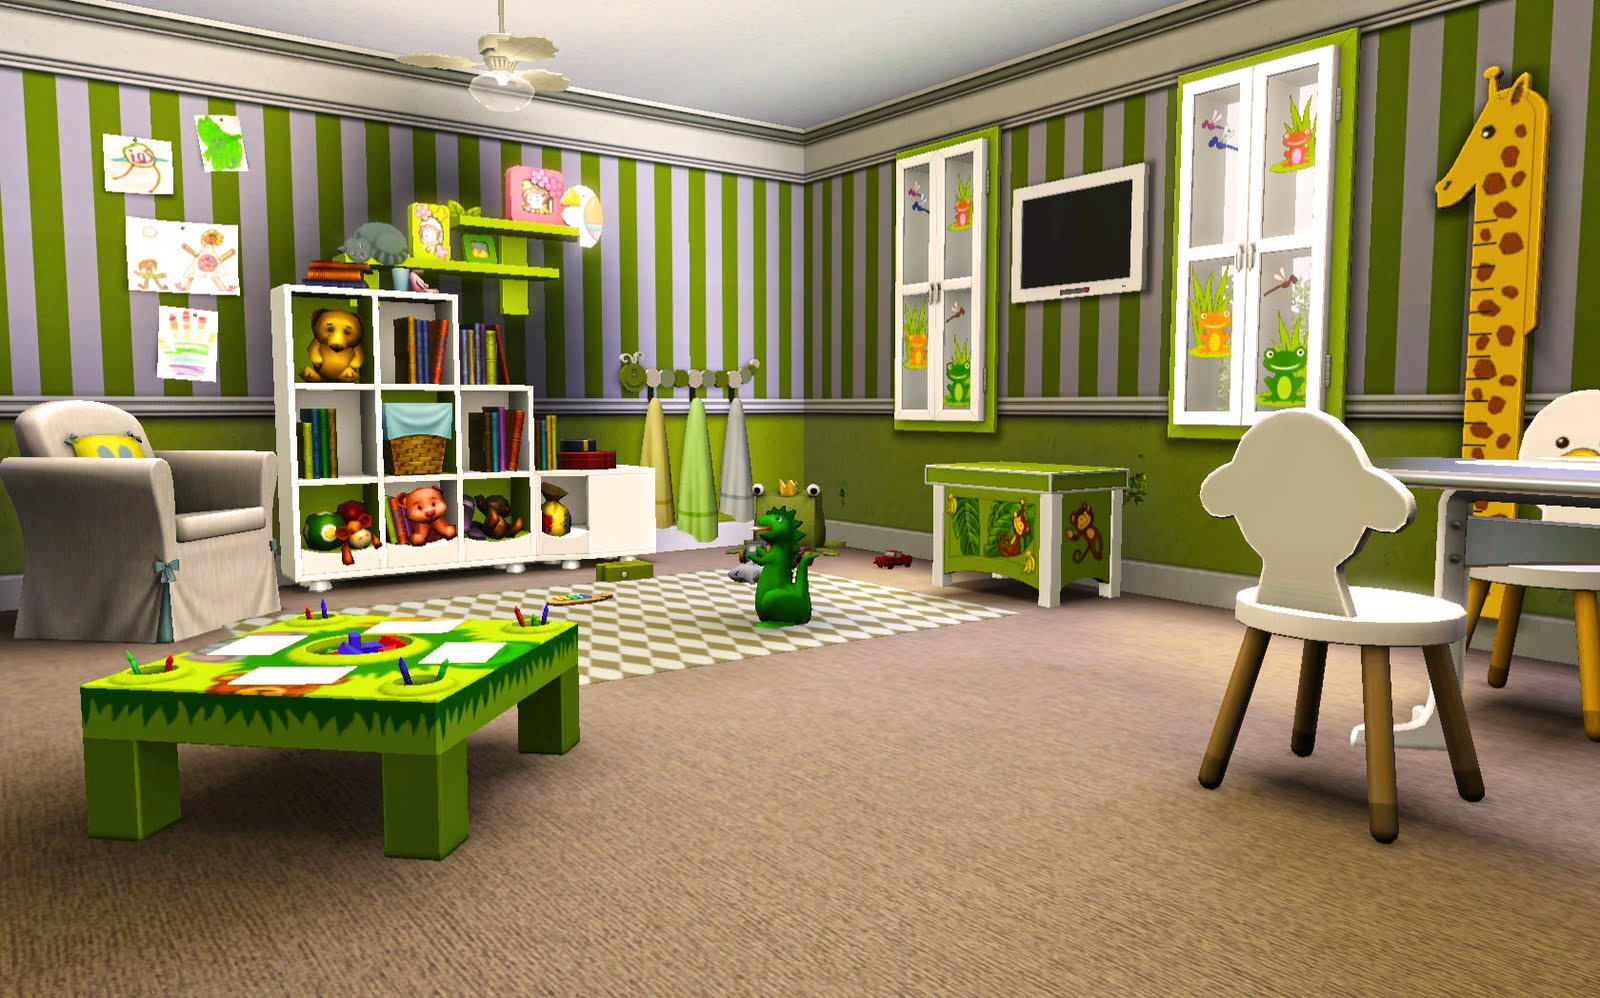 Beautiful Wallpapers Daycare Dynamo By Eva Von Asch